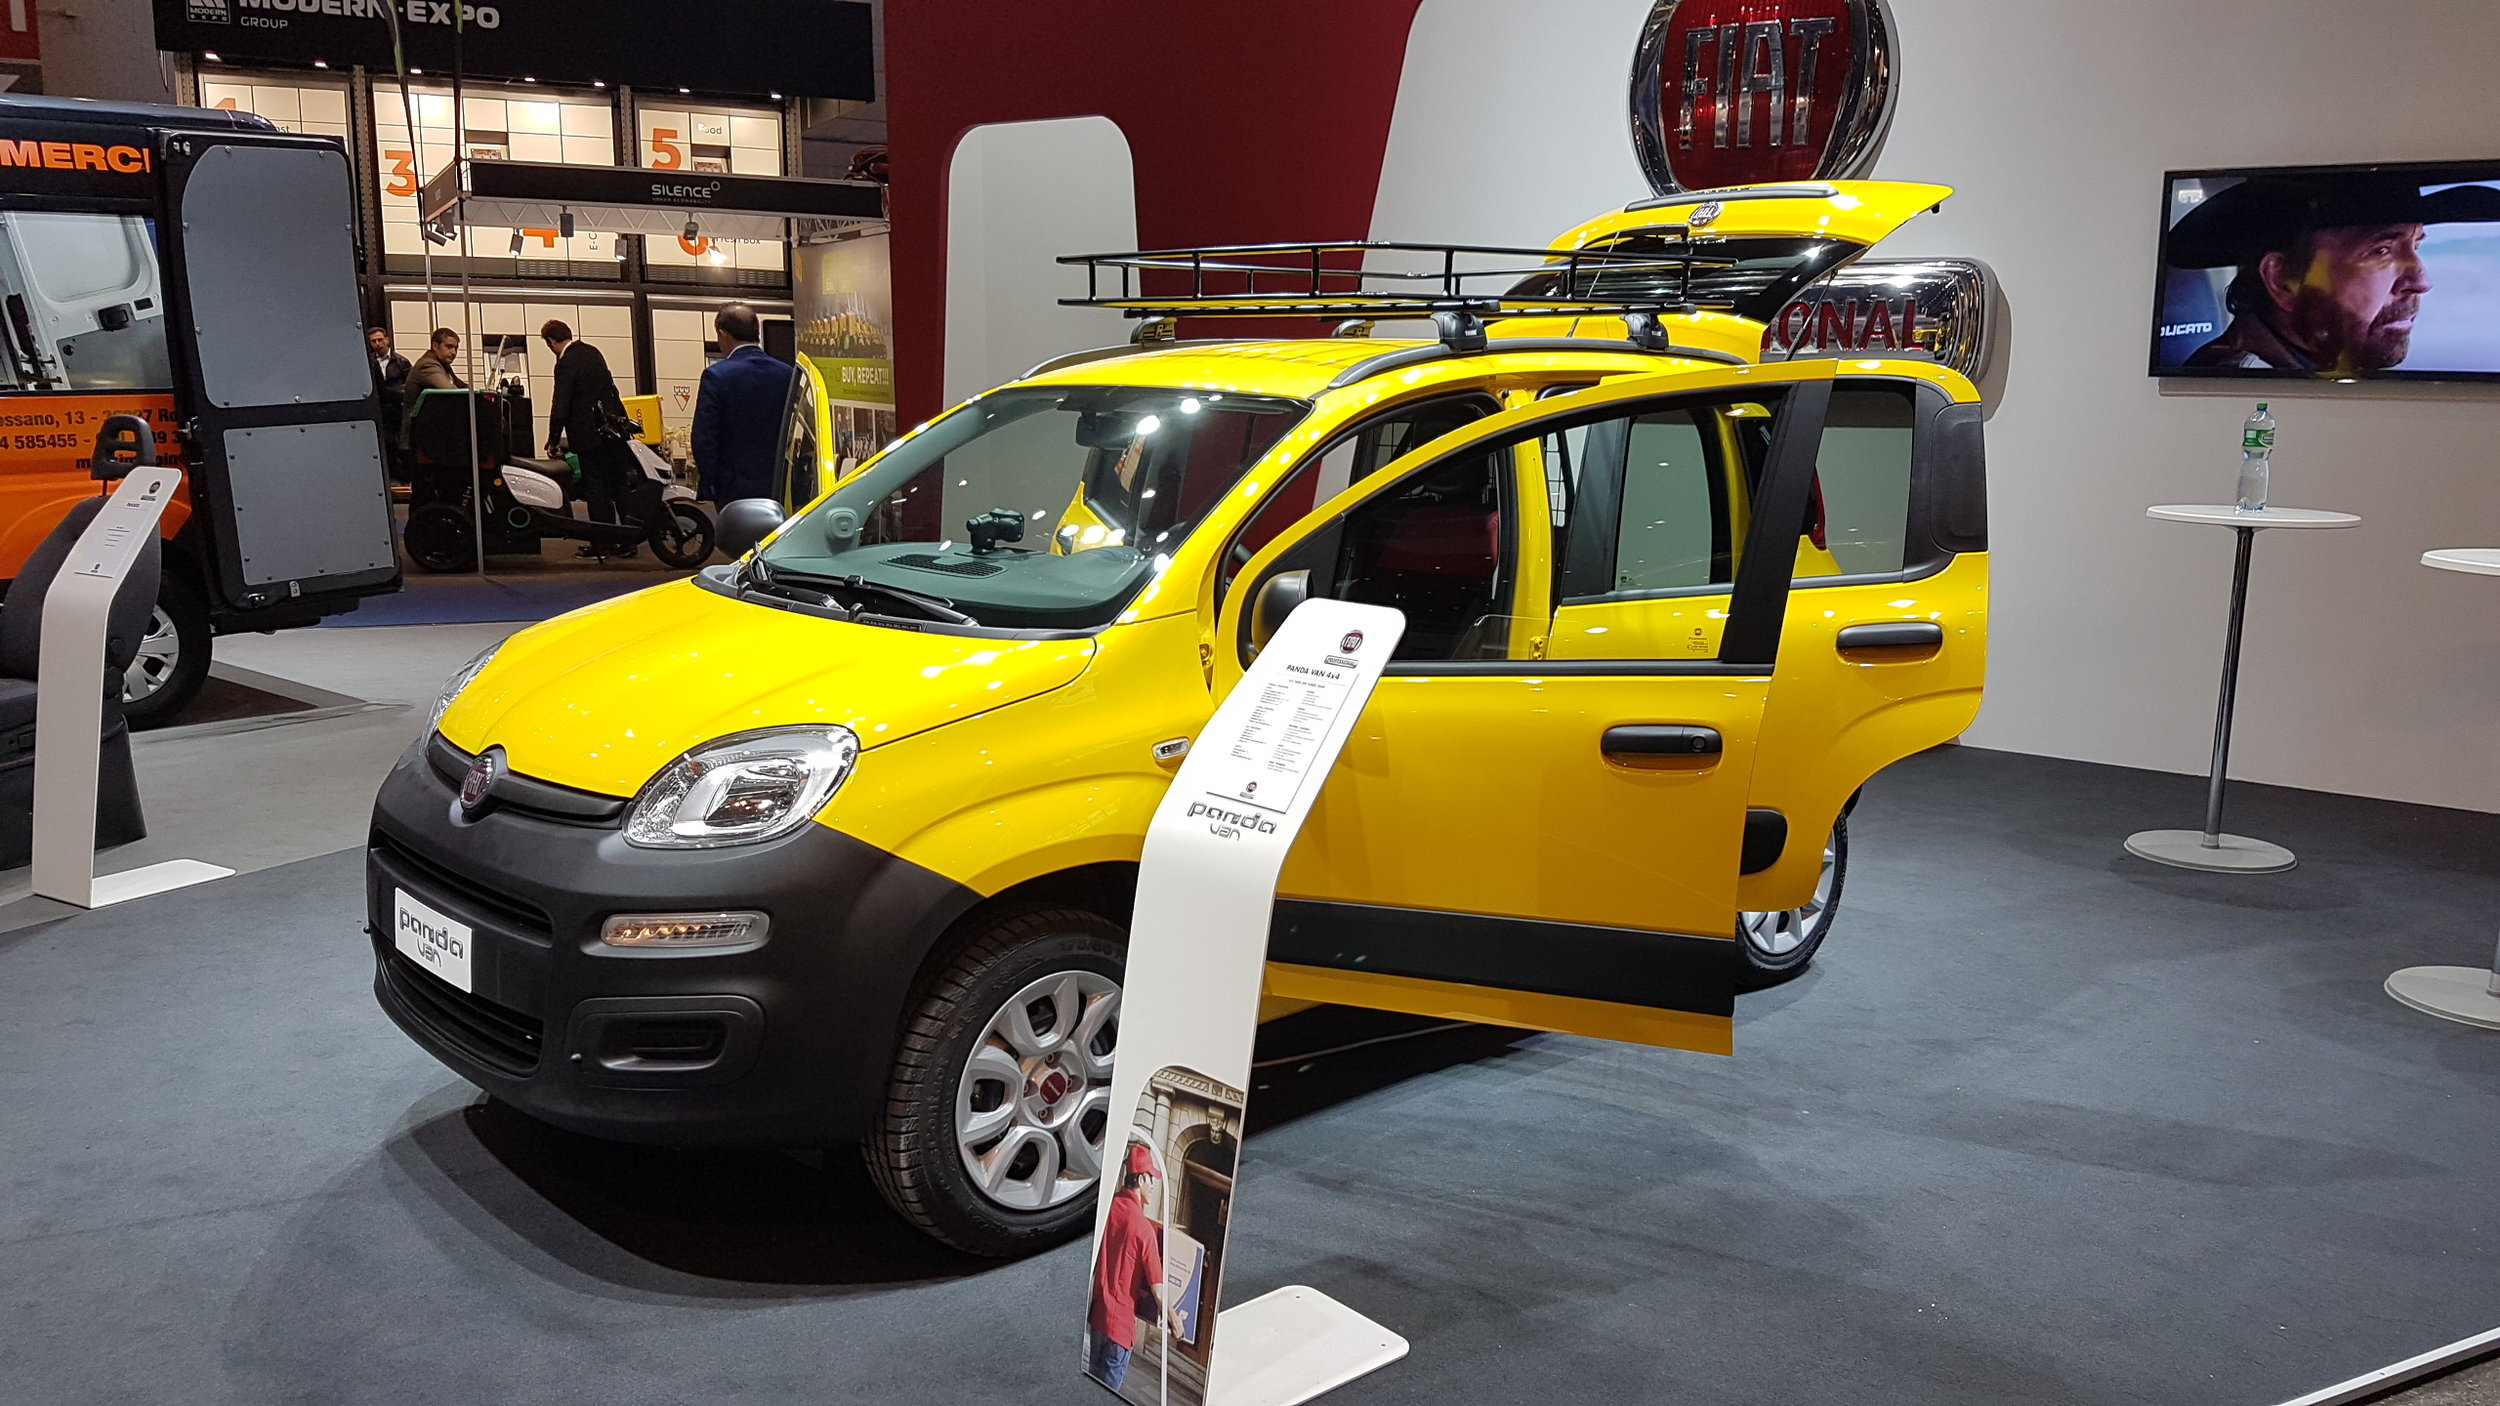 Panda van from Fiat. If they ever release an electric version, then those cars would be Electric Pandas.